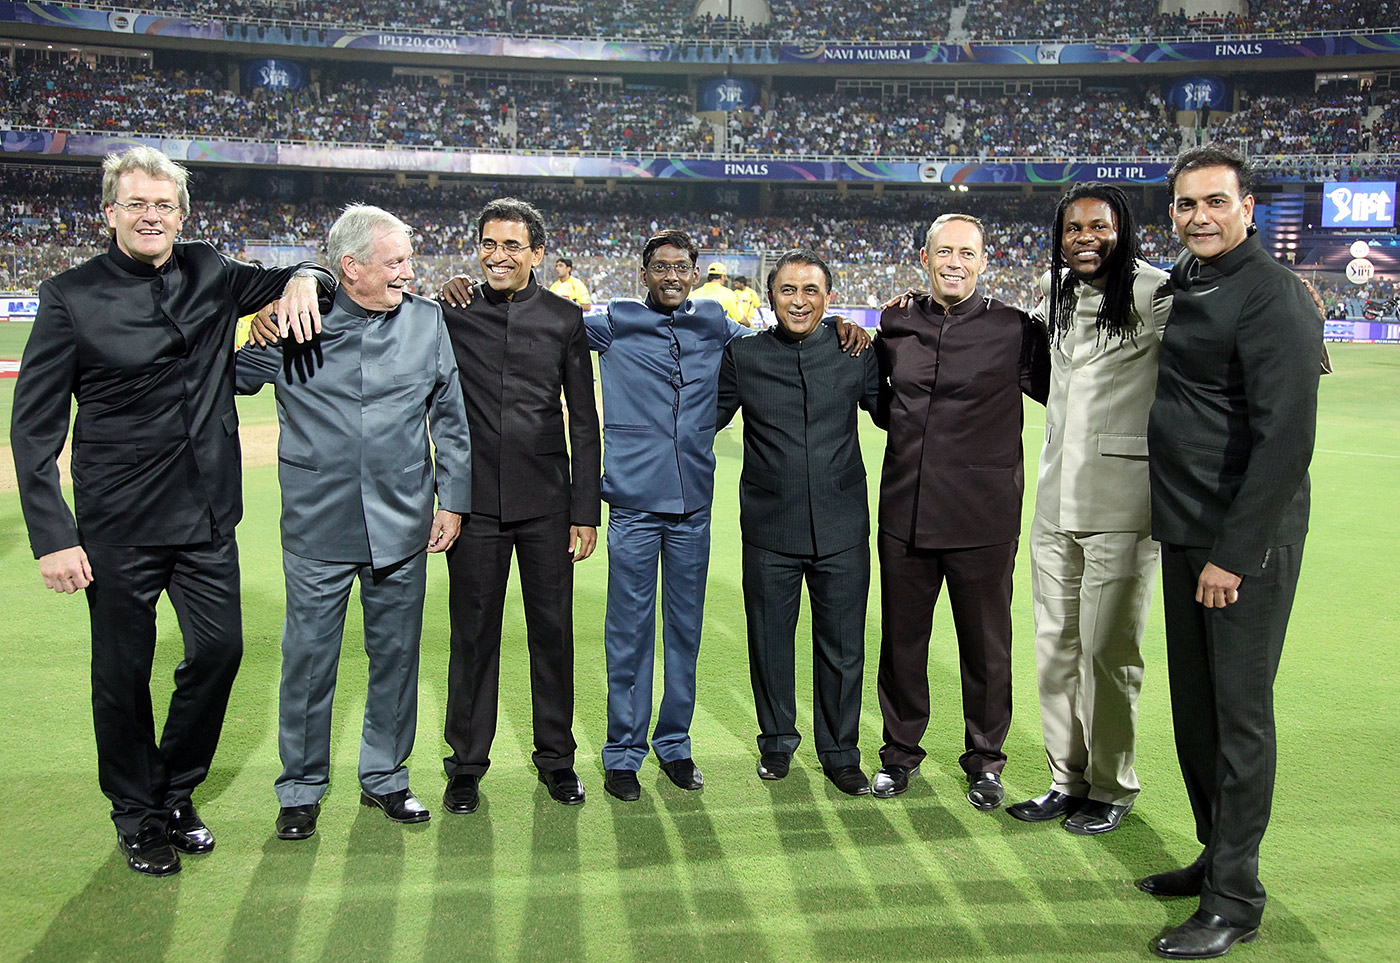 All the BCCI's men: Siva (fourth from left) with fellow commentators at the IPL final of 2010